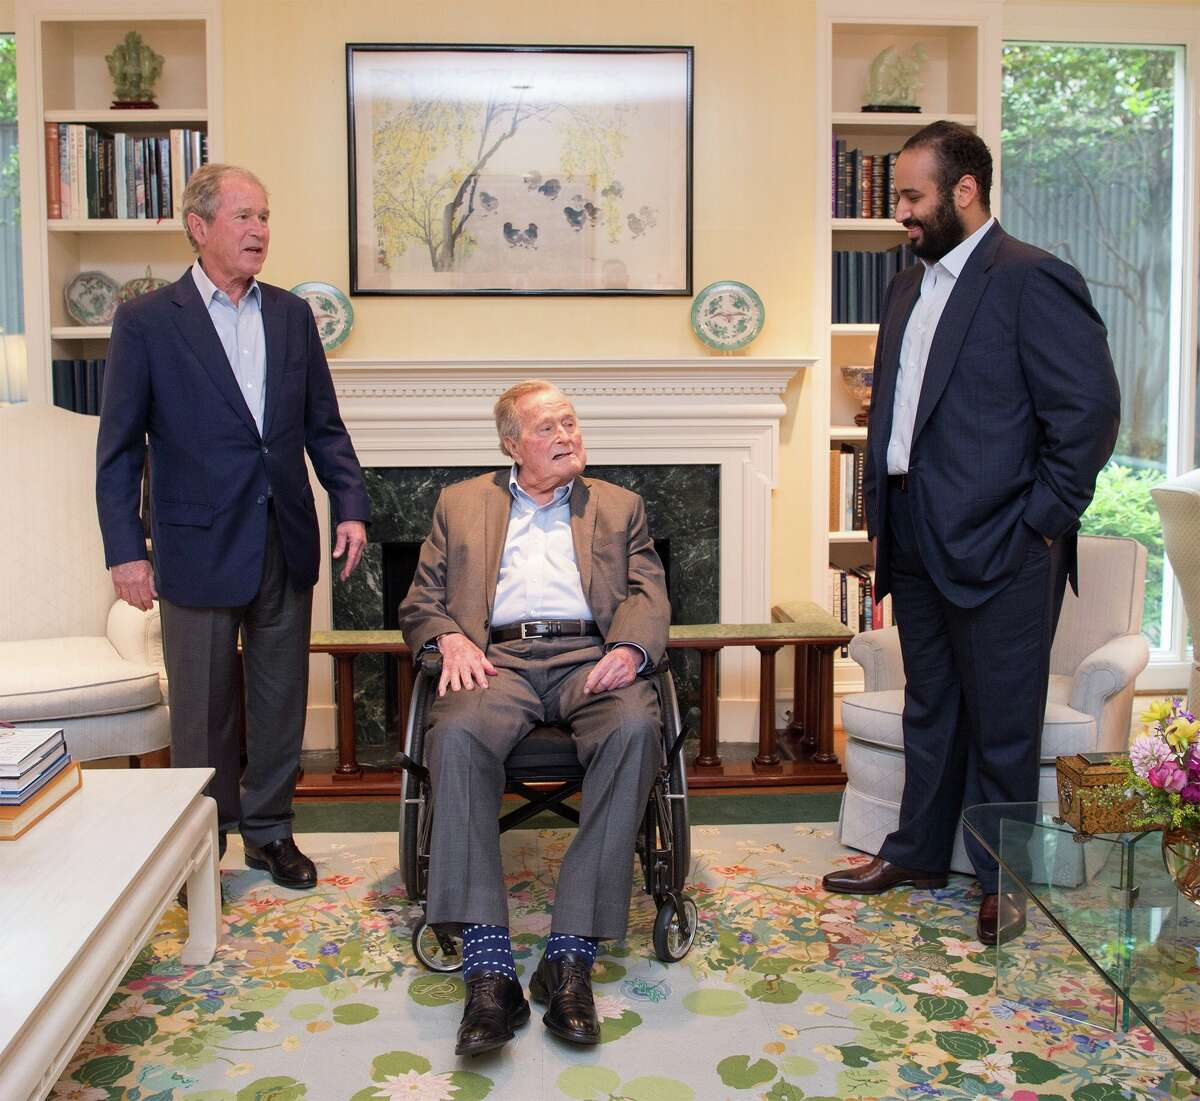 Crown Prince of Saudi Arabia Mohammed bin Salman Al Saud, right, meets with Bush and former President George W. Bush in Houston on April 8, 2018.